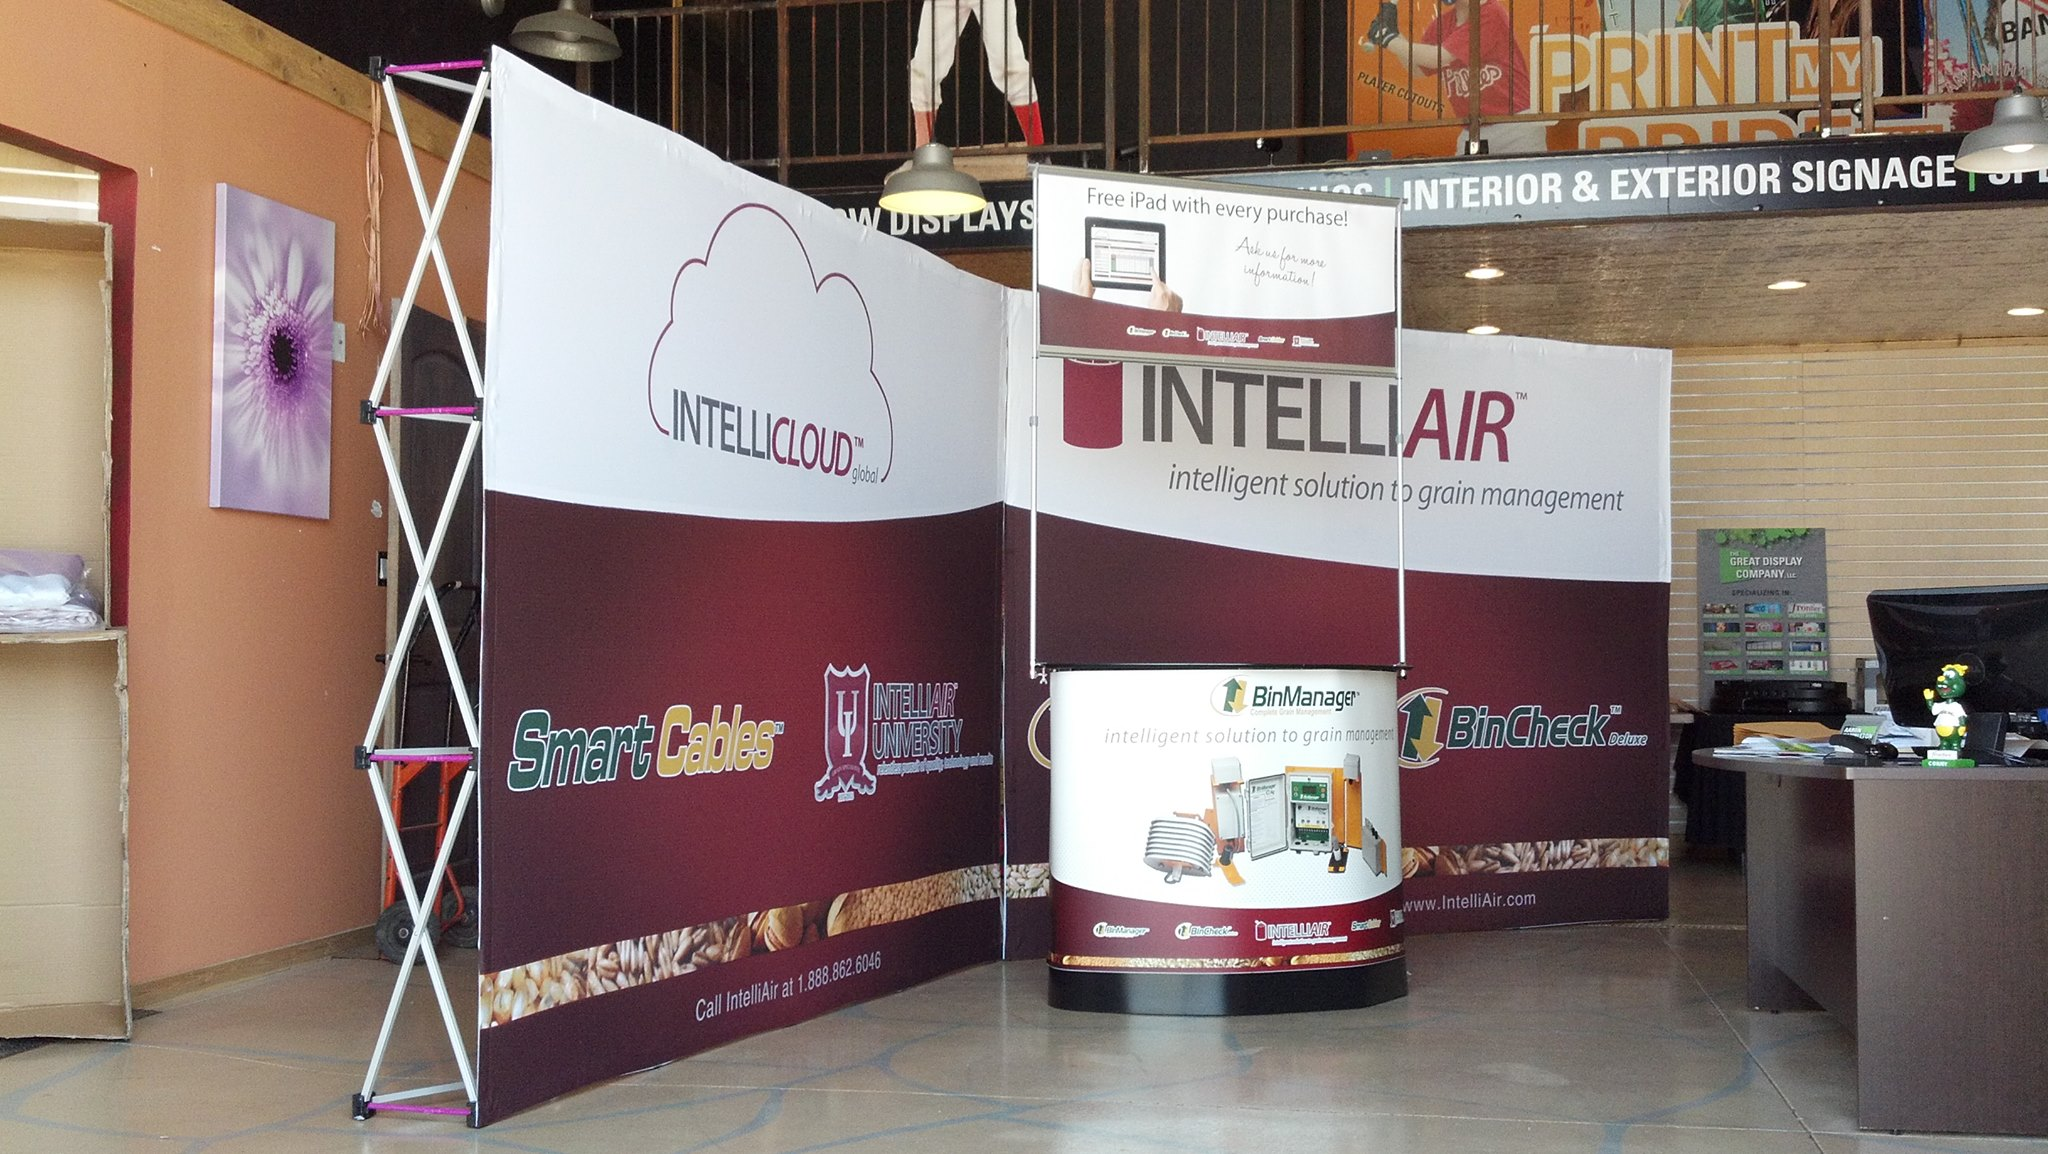 Intelliair